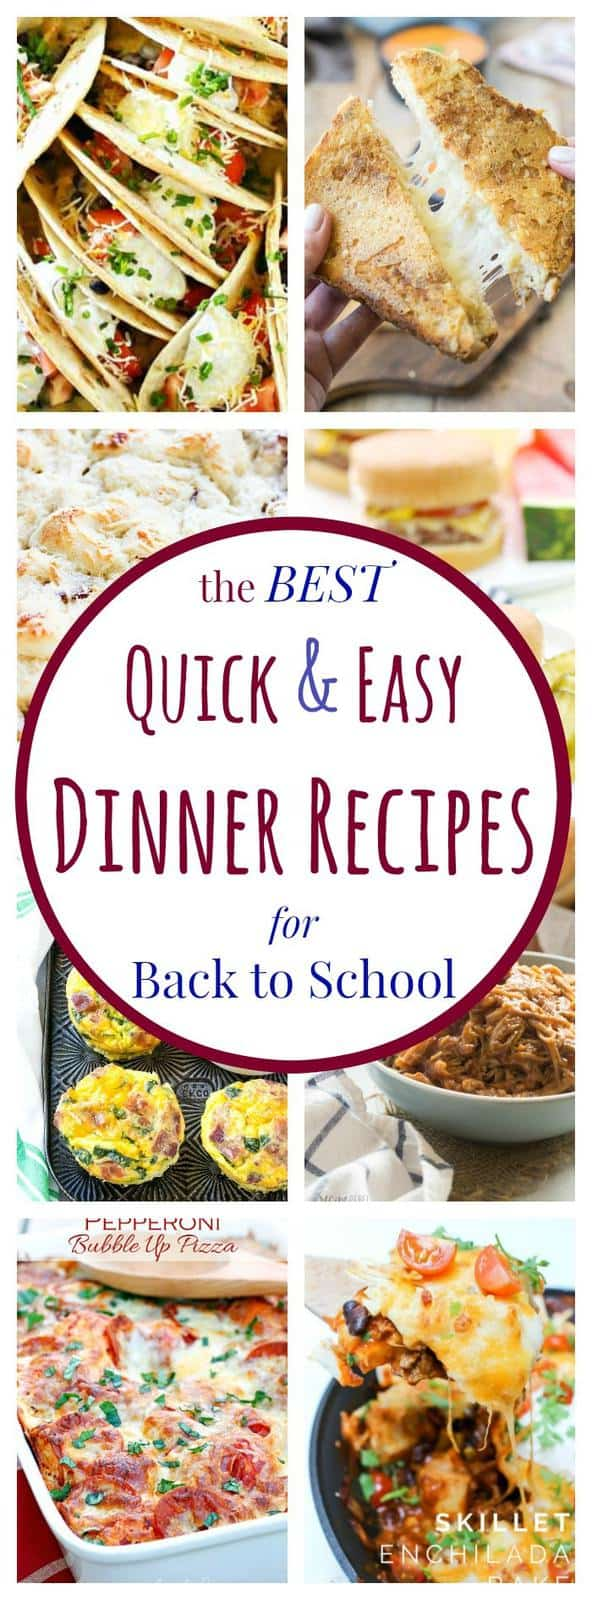 best quick and easy dinner recipes for back to school